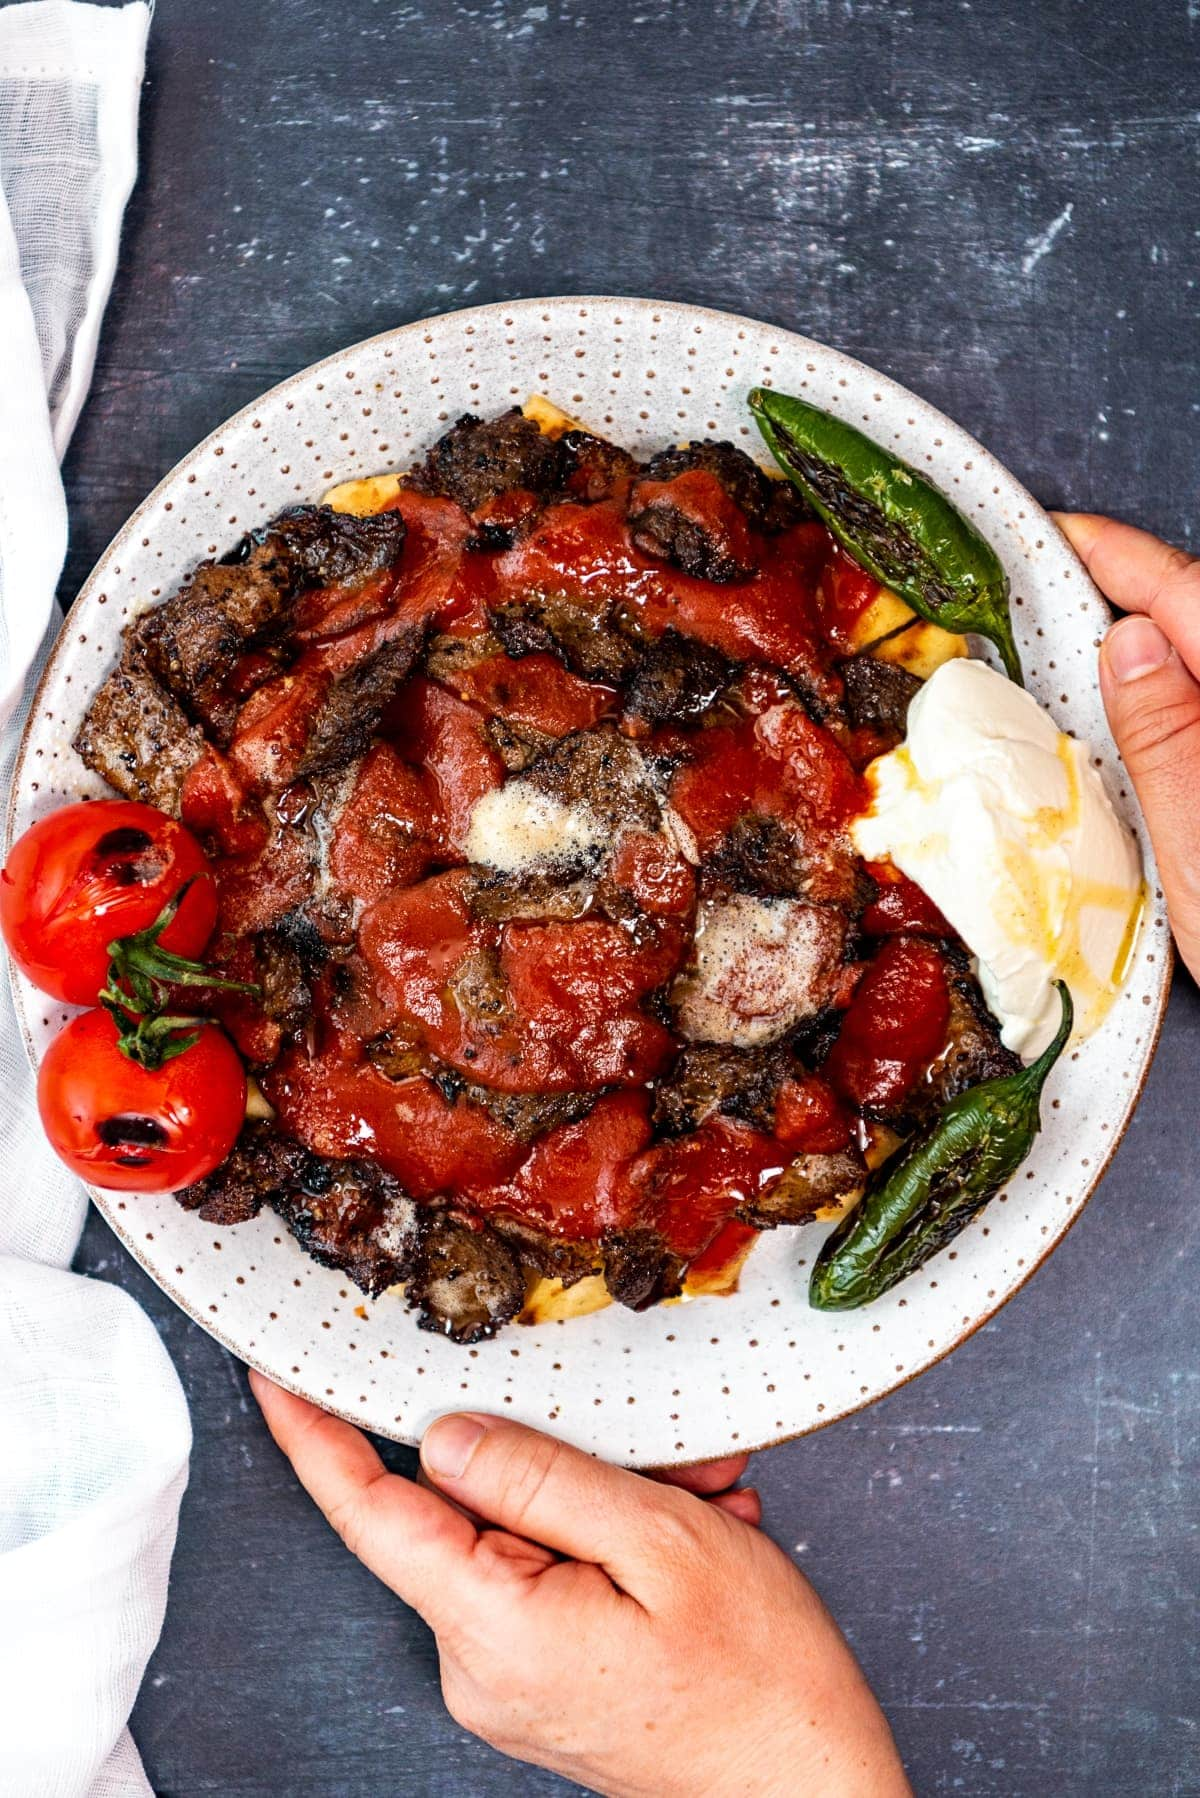 Hands holding a white plate with homemade iskender kebab with pide bread, tomato sauce, browned butter, yogurt, roasted tomatoes and green peppers.